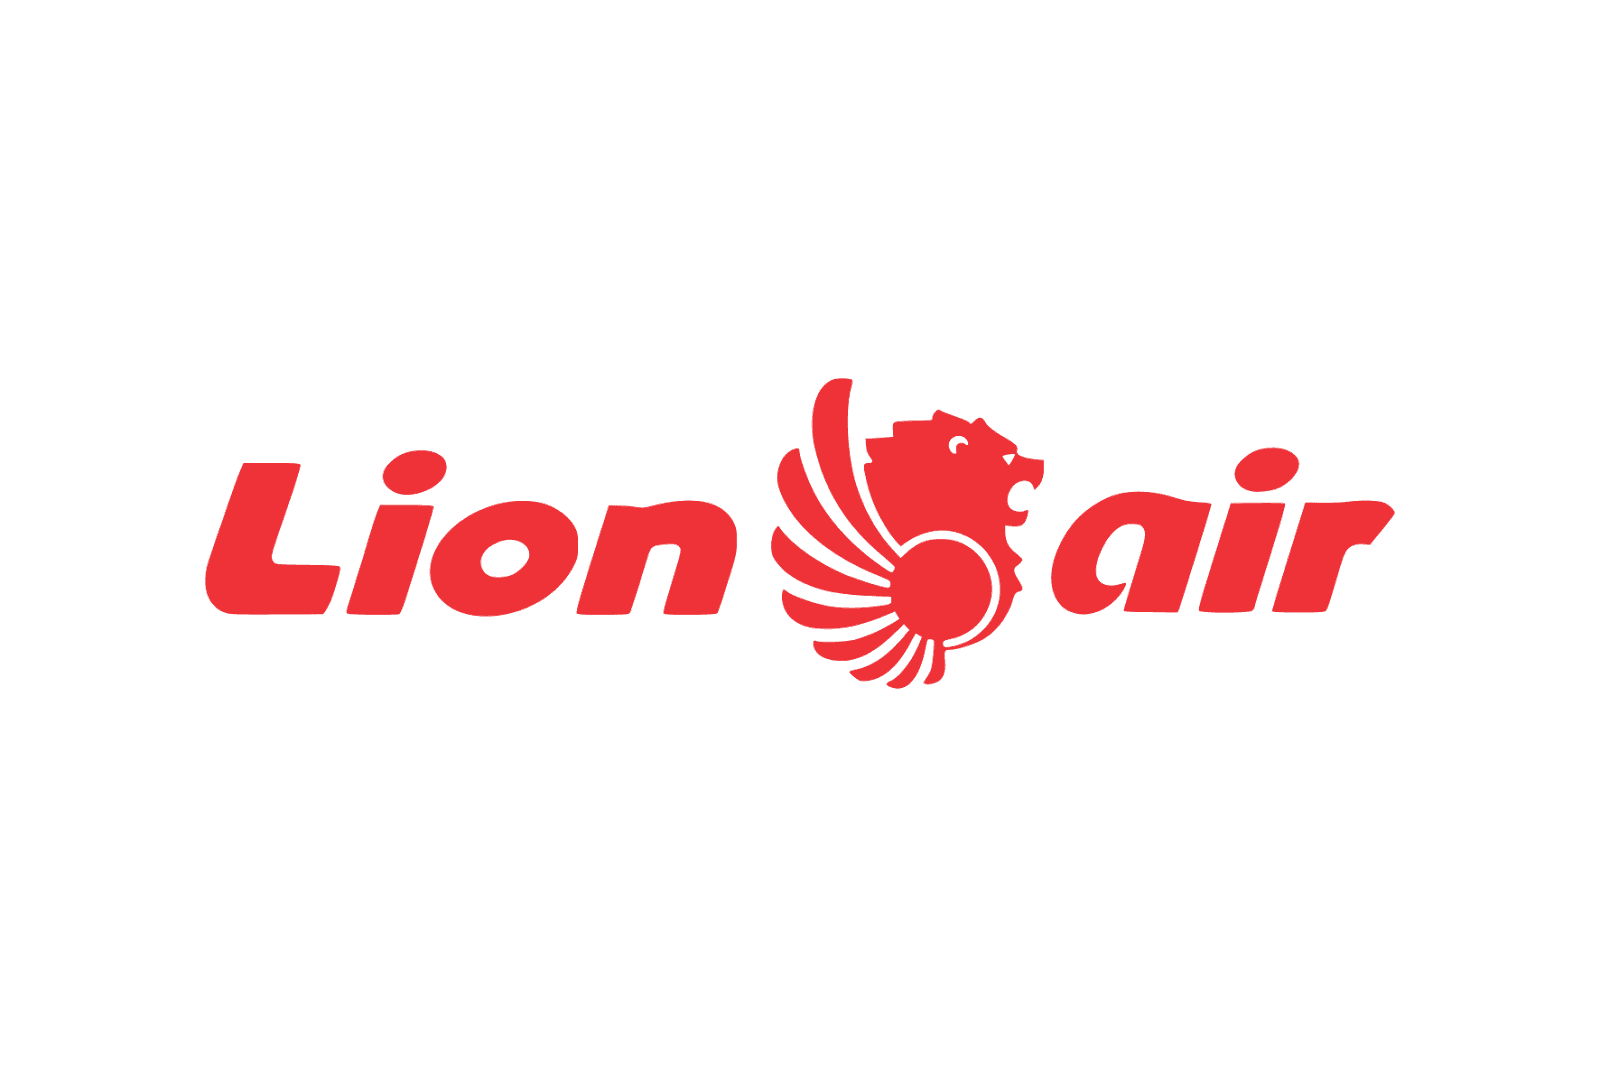 Lion Air Indonesia Kode